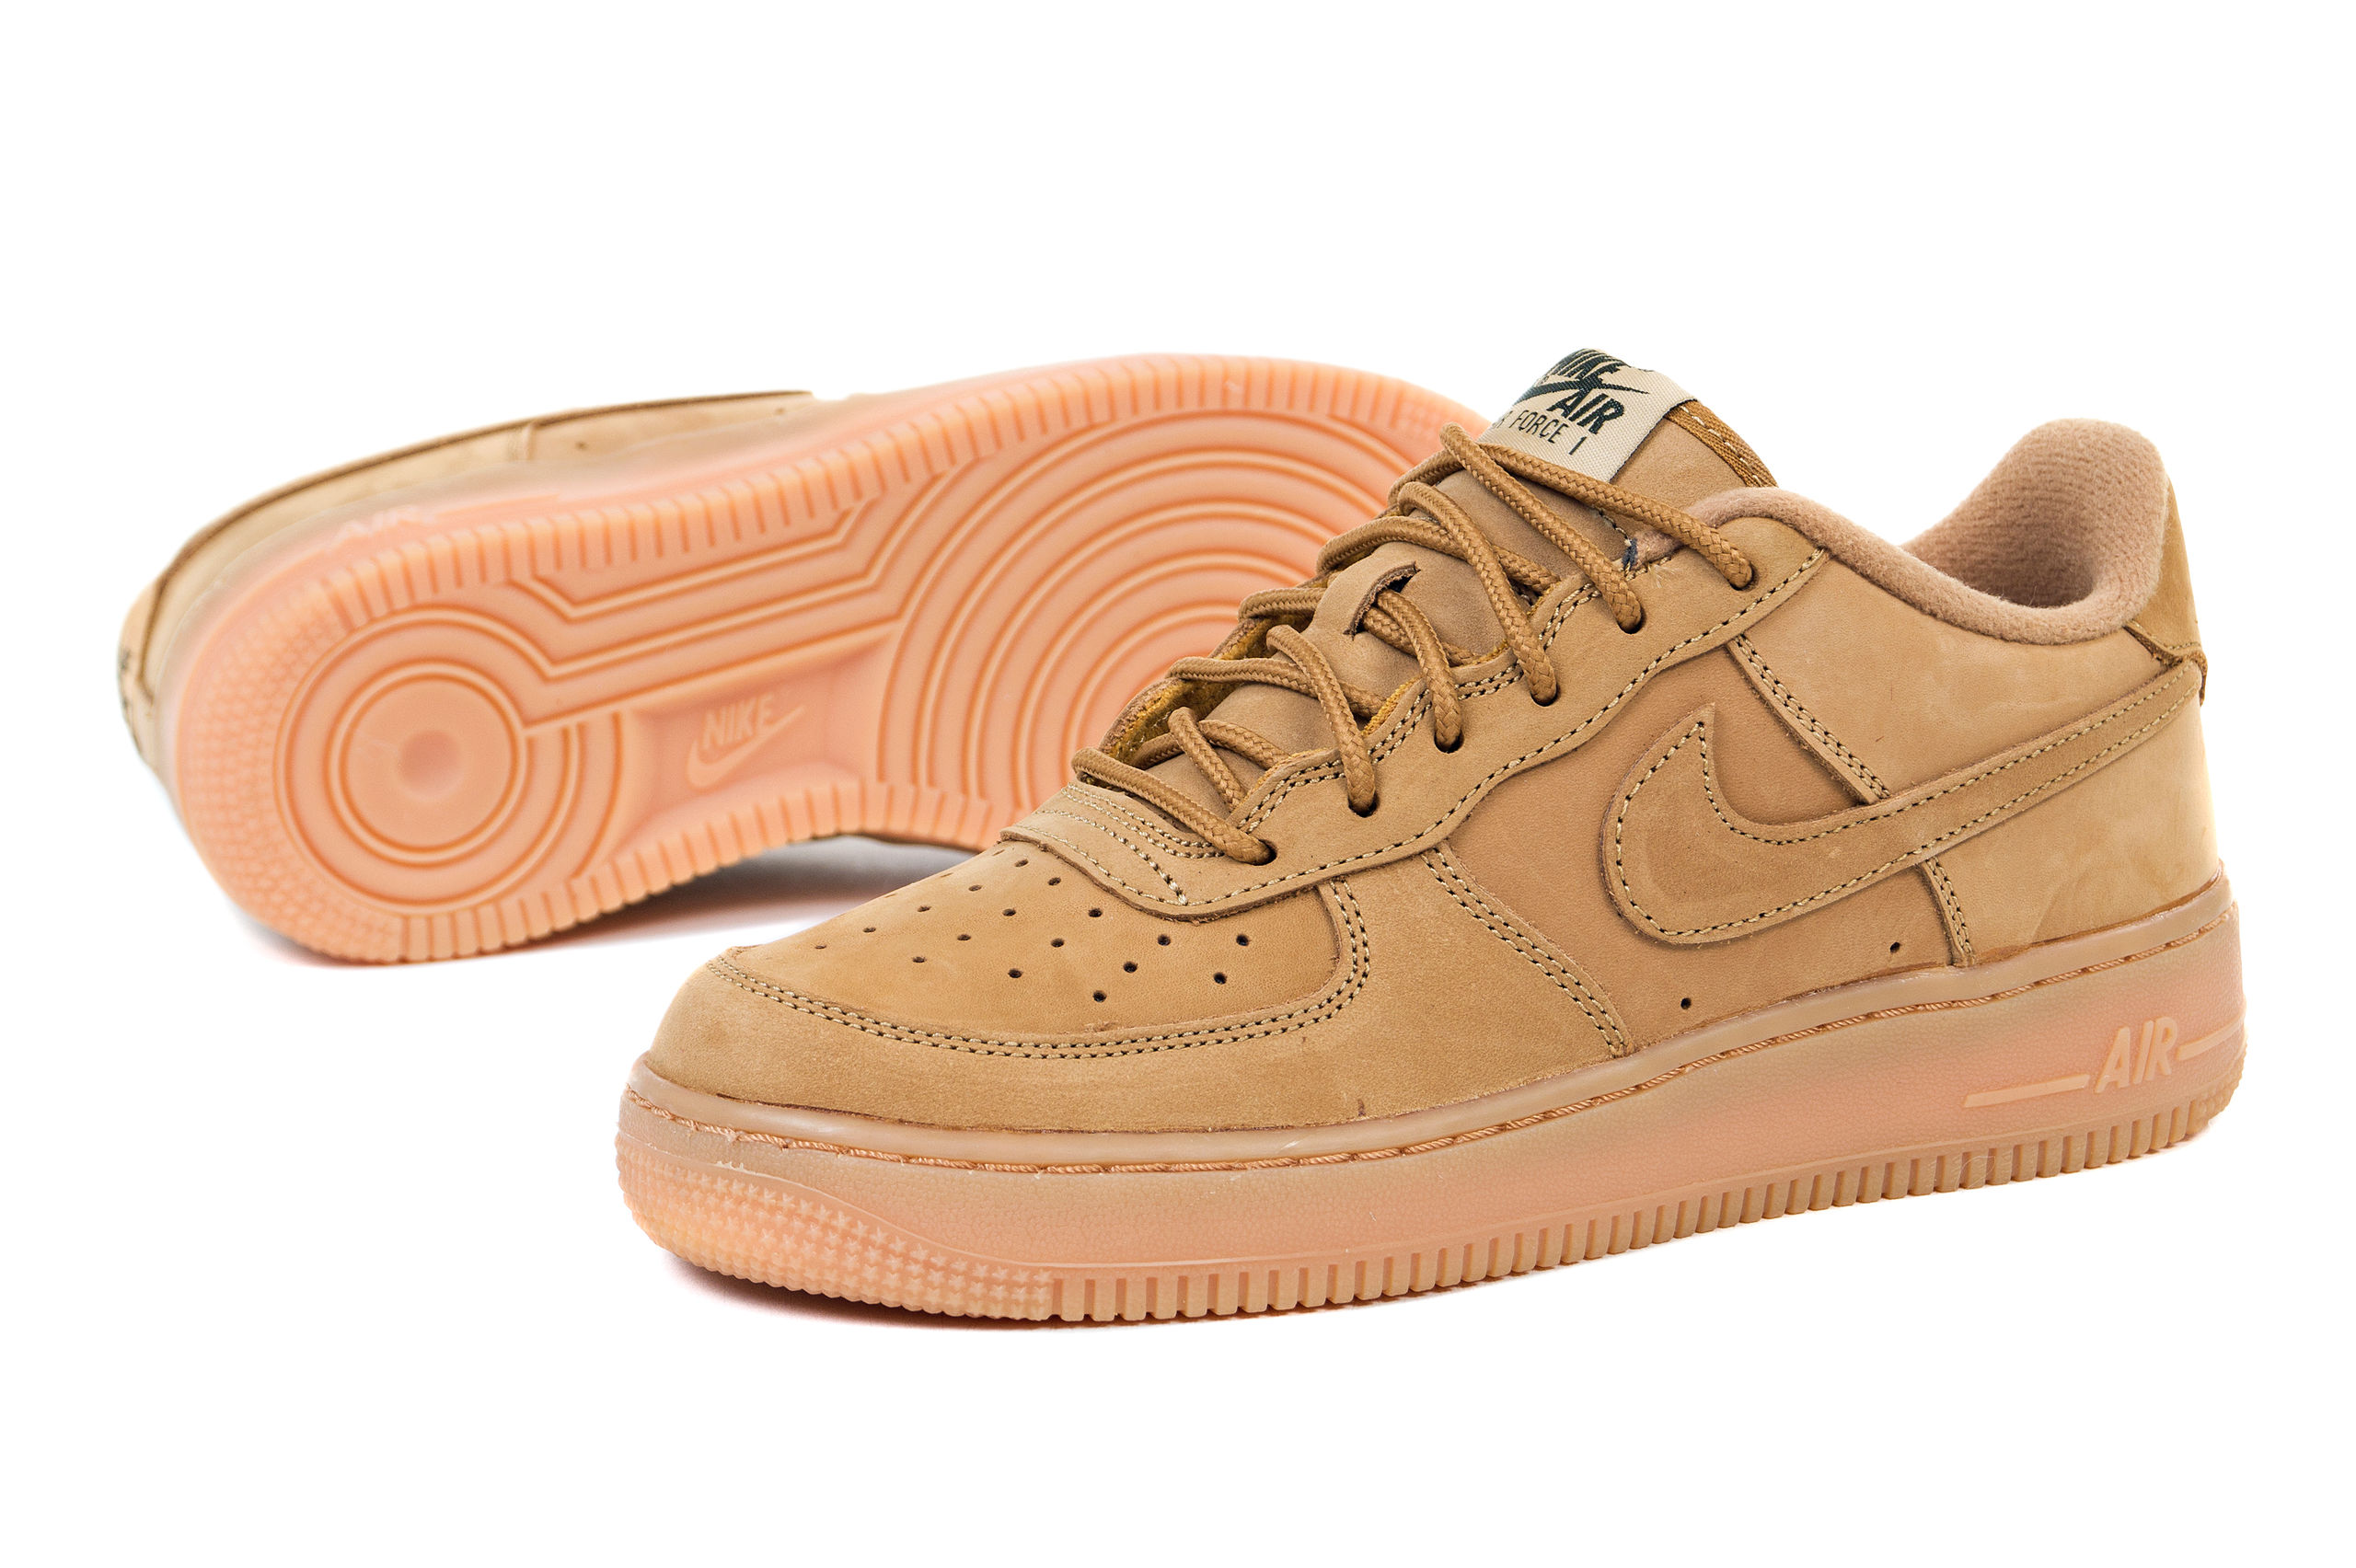 hot sale online 9f5bd c12e8 BUTY NIKE AIR FORCE 1 WINTER 943312-200 R. 38 - 7657796675 ...